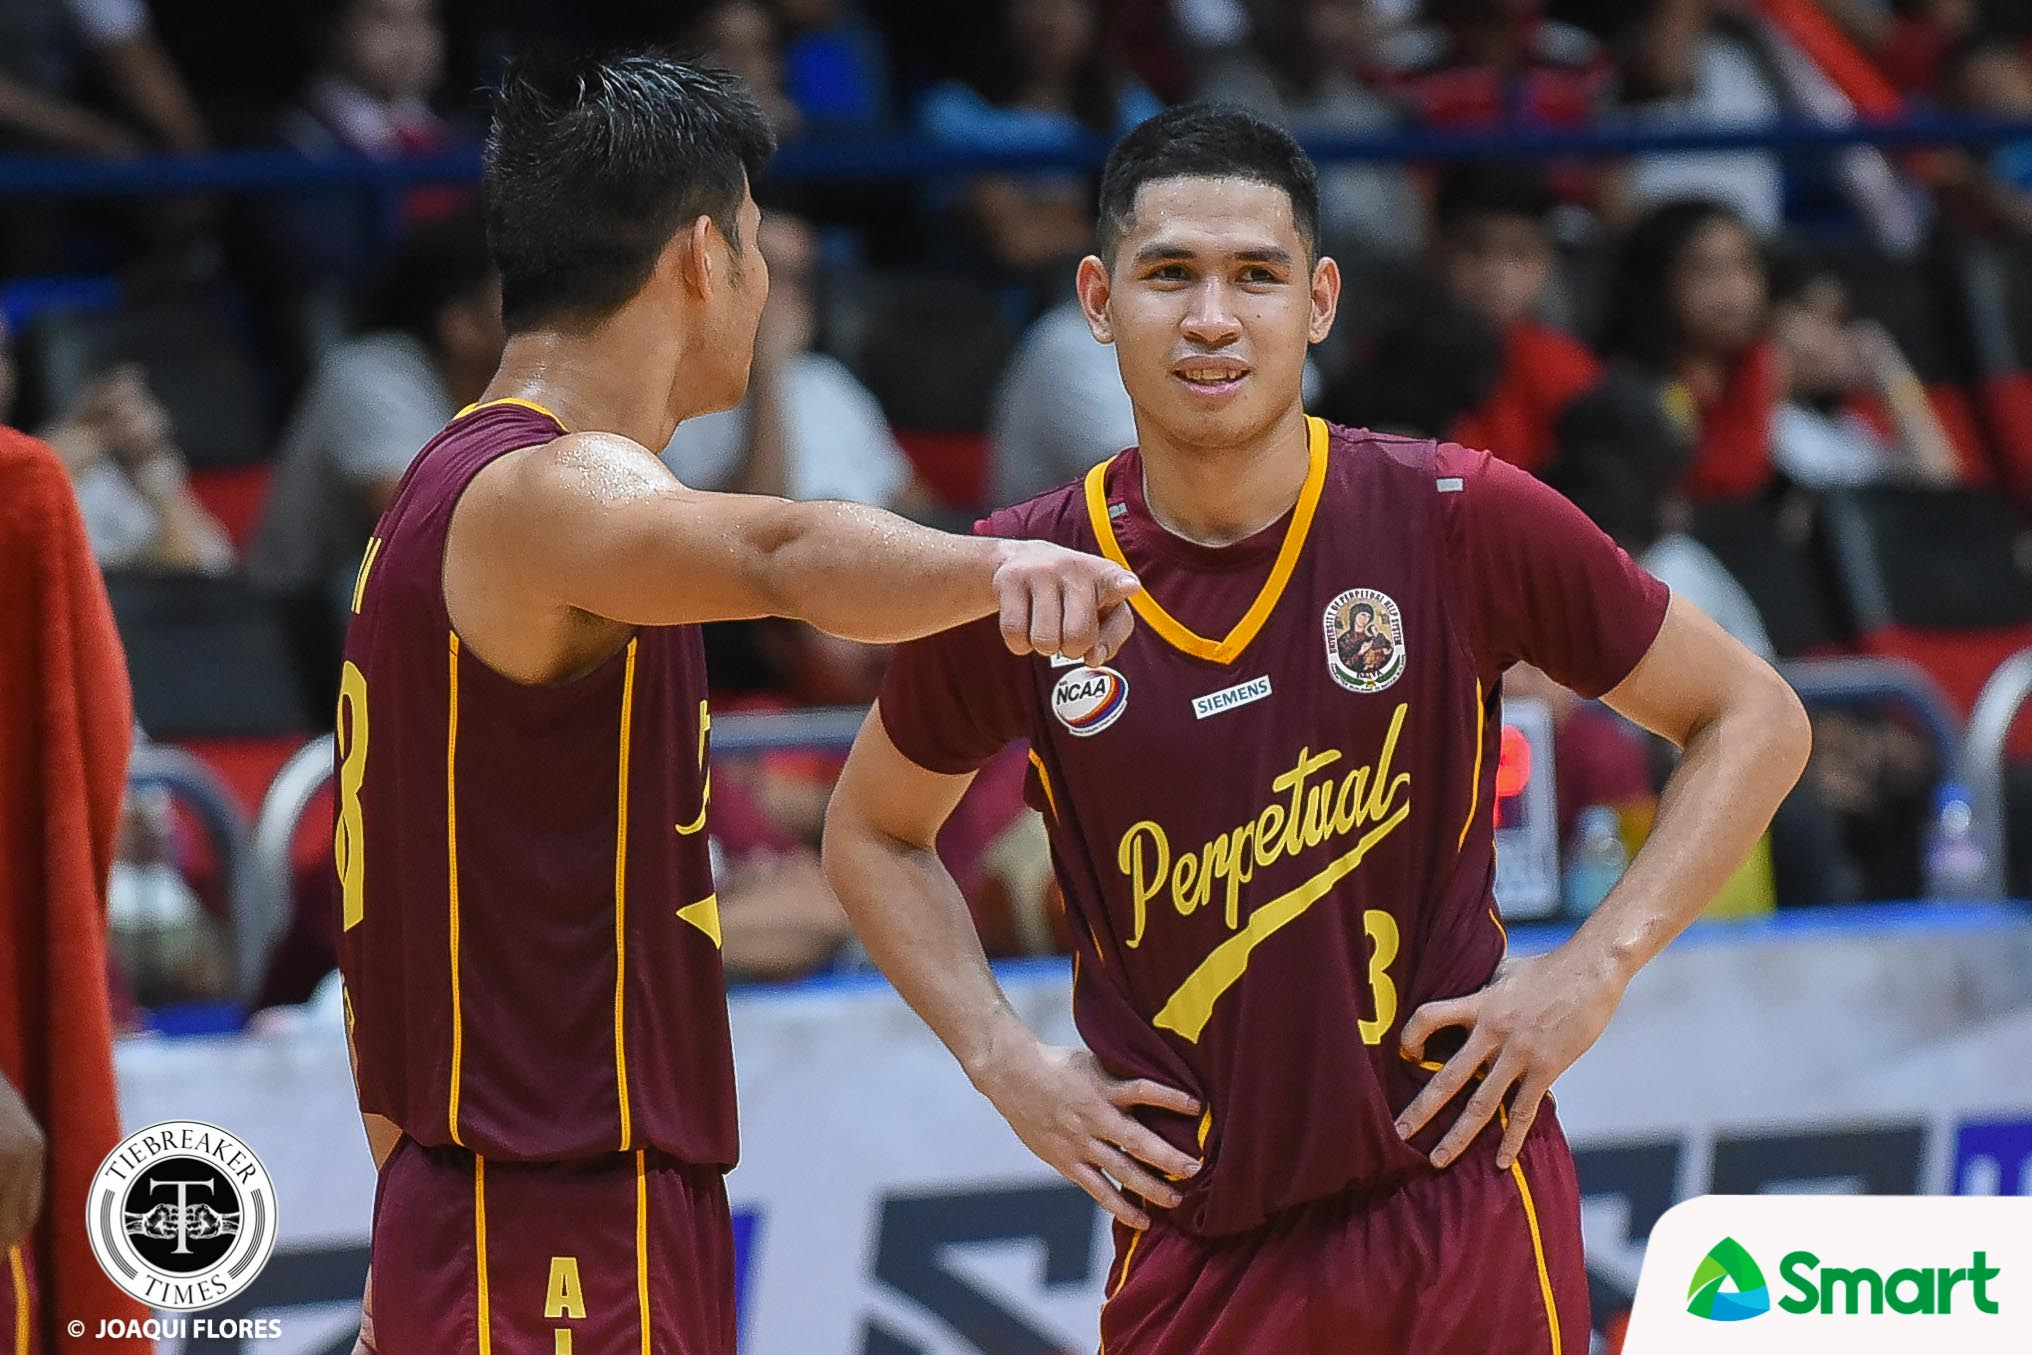 Tiebreaker Times Frankie Lim, Altas play on amid controversy Basketball NCAA News UPHSD  Perpetual Seniors Basketball NCAA Season 94 Seniors Basketball NCAA Season 94 Frankie Lim